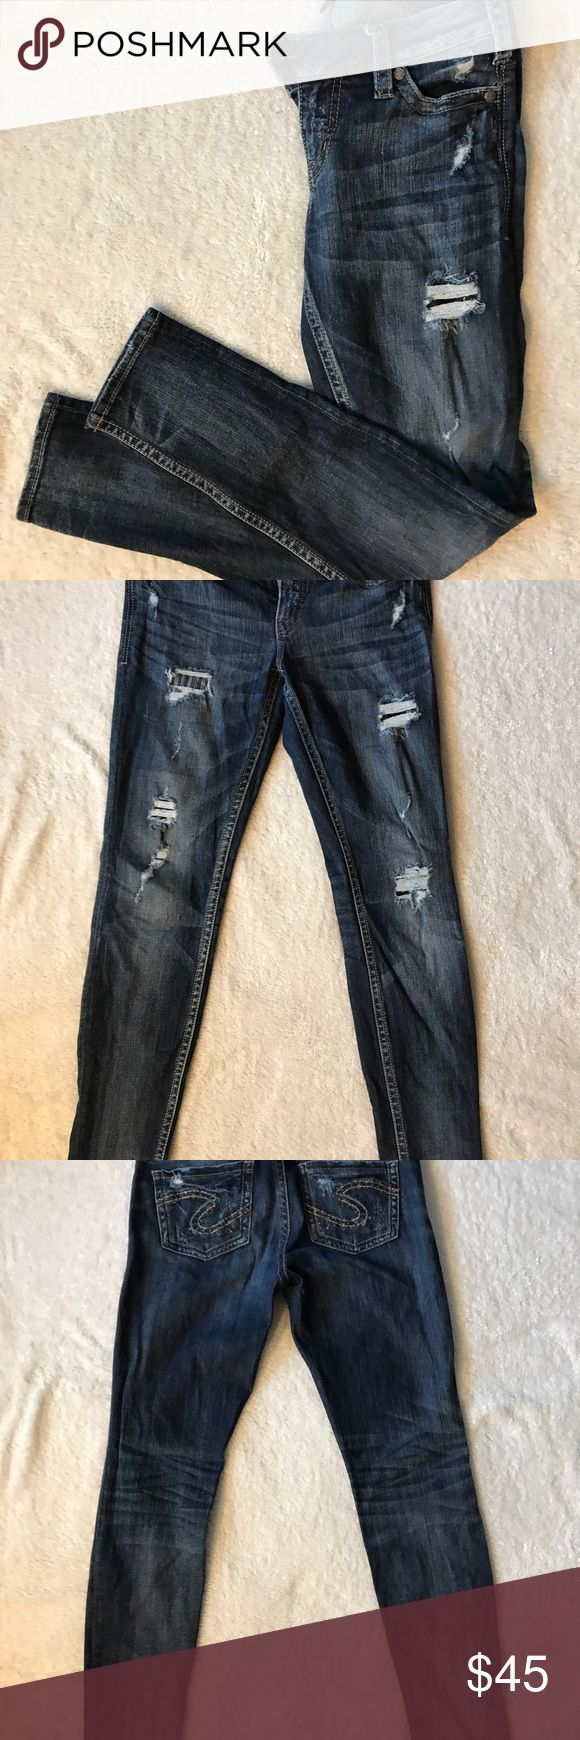 "Like new women's Silver Jeans Like new skinny jeans Tuesday fit Size 29 w/ 31"" inseam Silver Jeans Jeans Skinny"